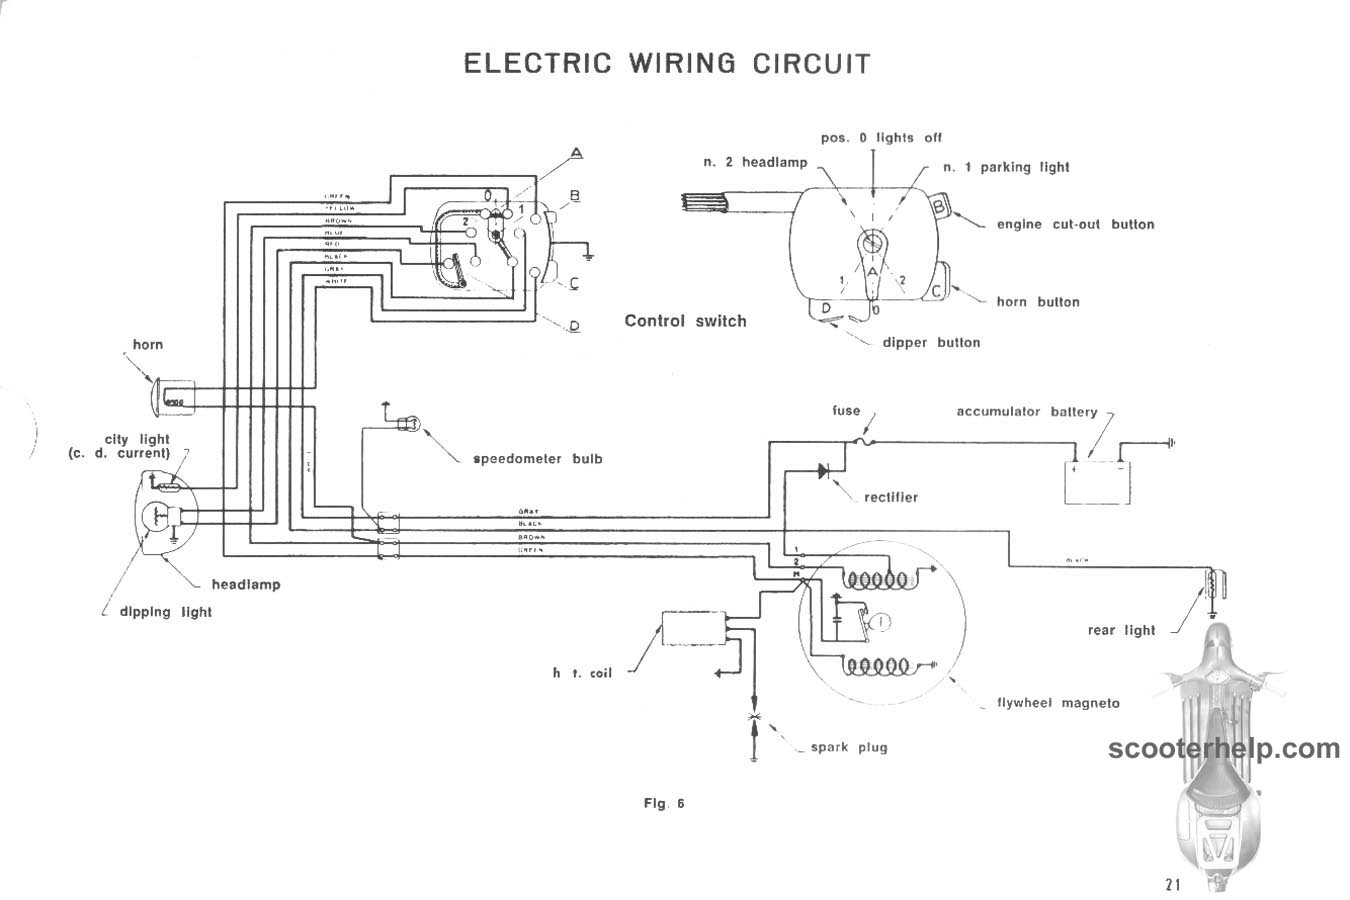 21 150 ld factory repair manual lambretta series 2 wiring diagram at crackthecode.co